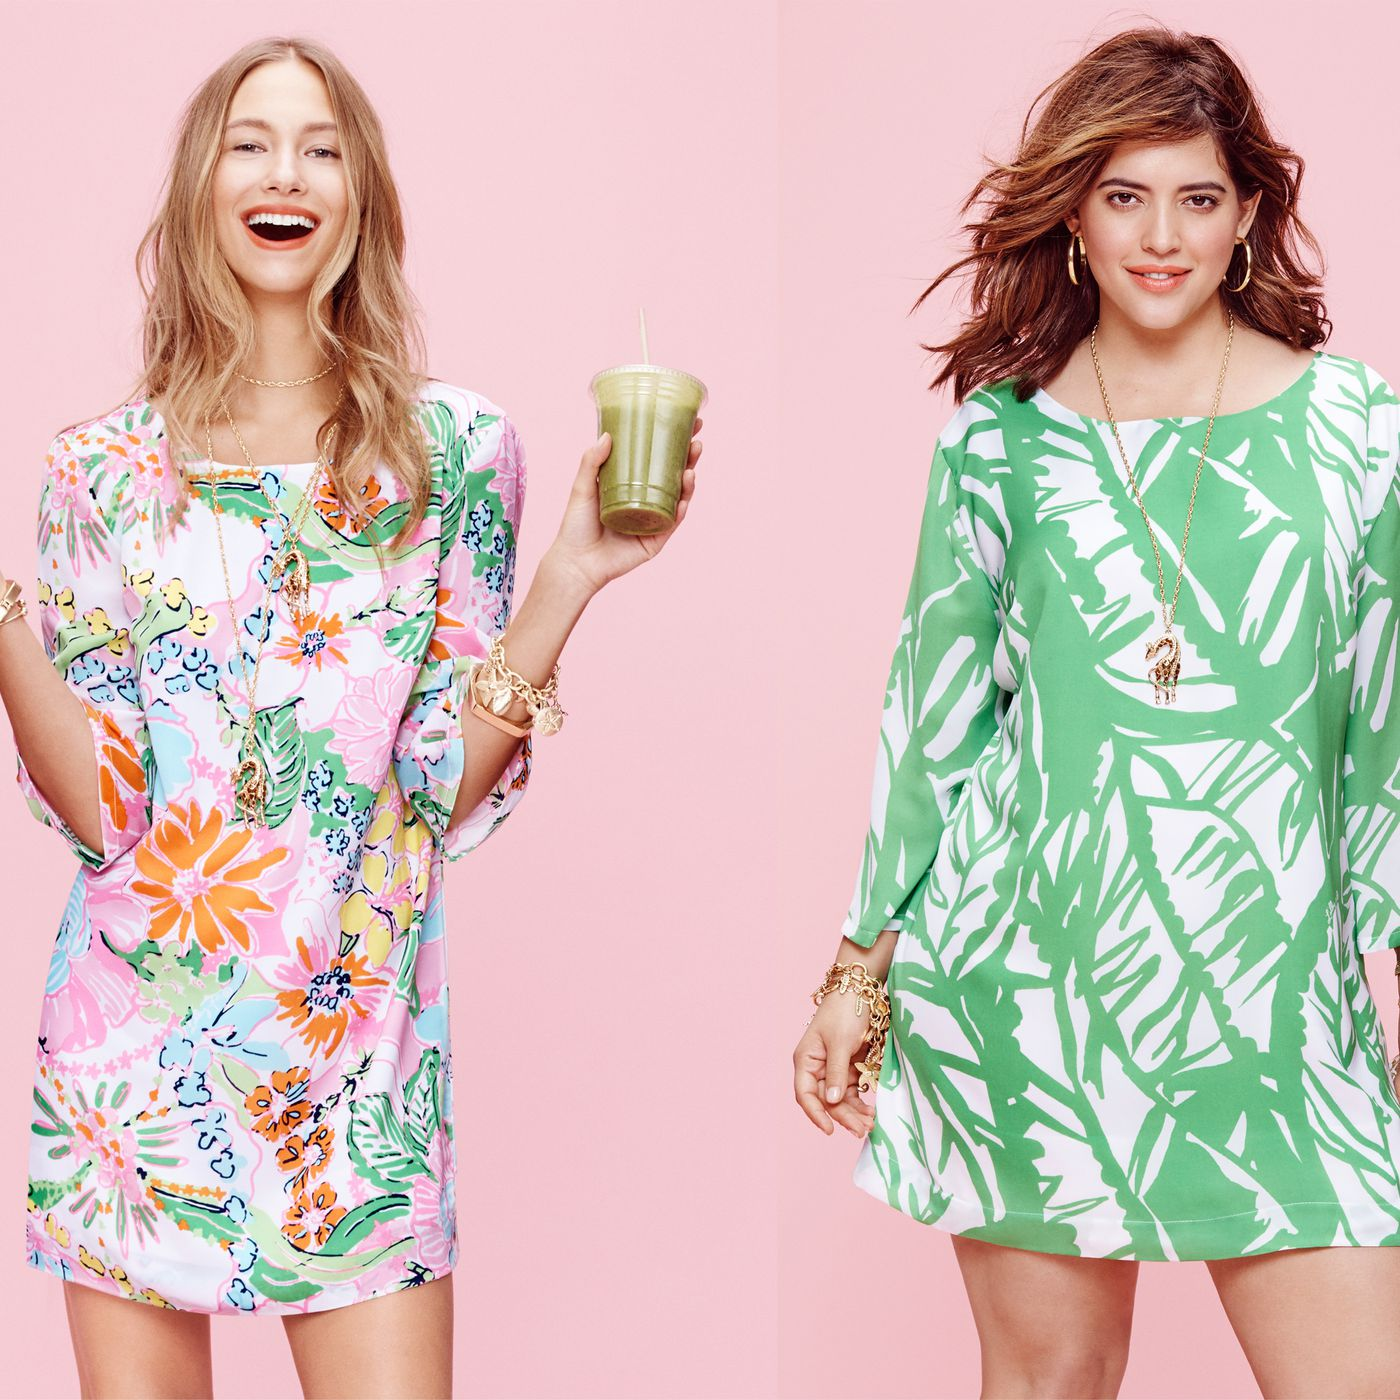 3858bb2026a The Lilly Pulitzer for Target Lookbook Is Here - Racked